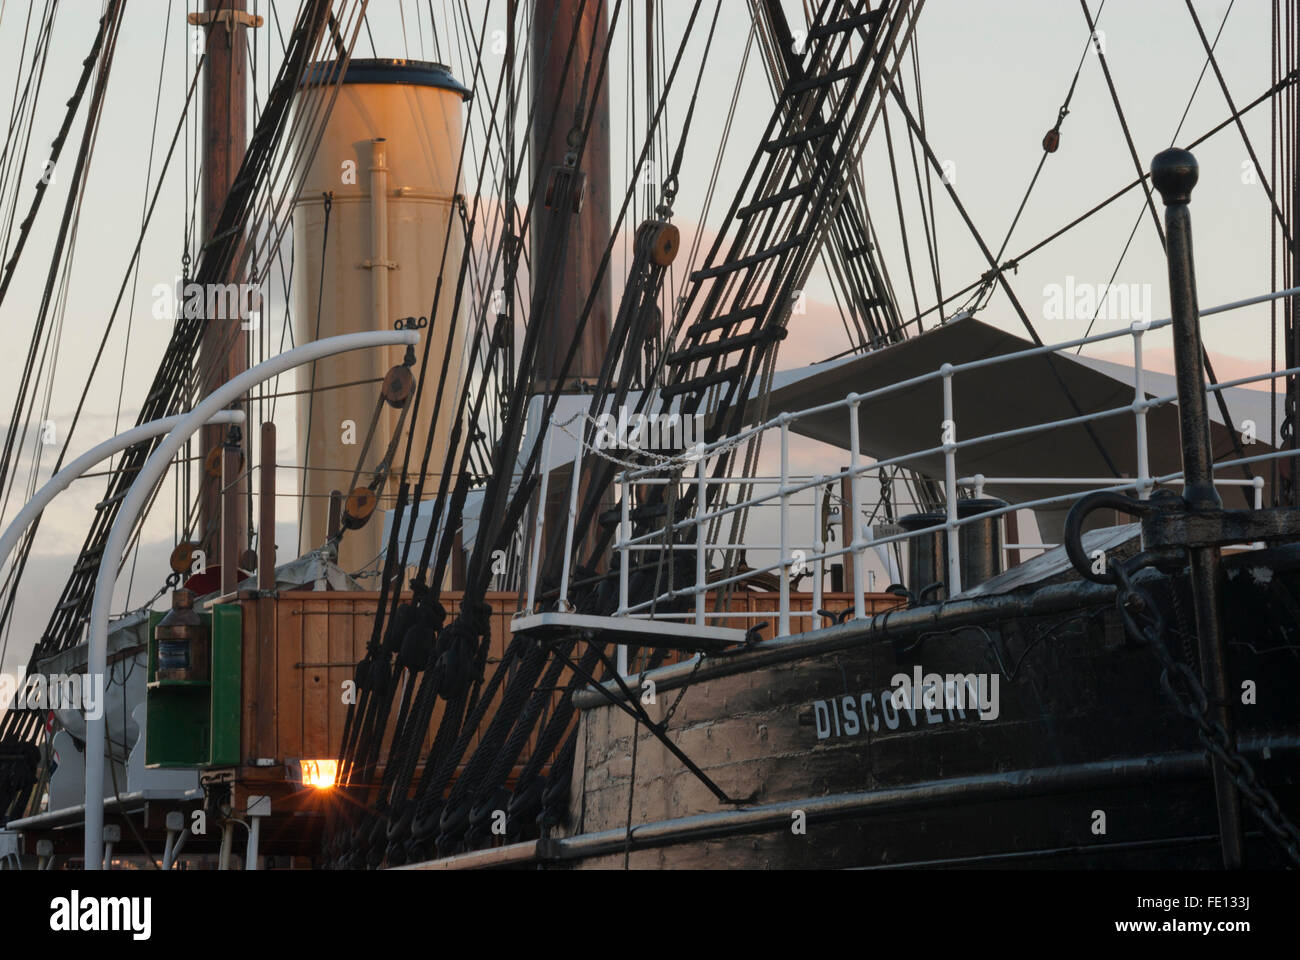 Funnel,mainmast and mizzenmast, RRS Discovery, Discovery Point, Dundee, Scotland, UK. Stock Photo